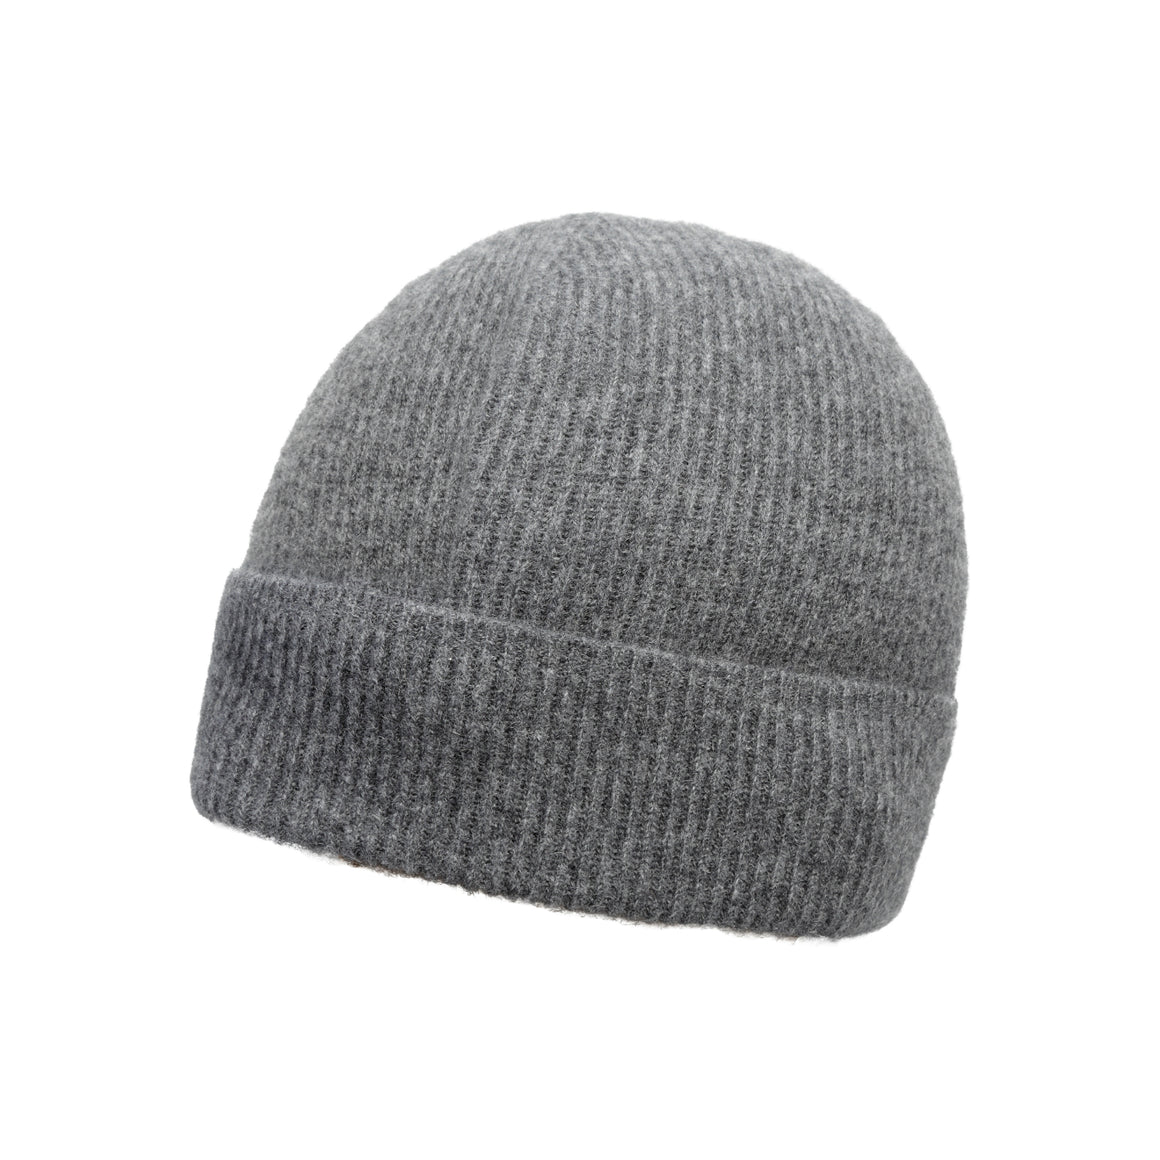 Charcoal Grey Ribbed | Pure Cashmere Beanie | shop now at The Cashmere Choice London